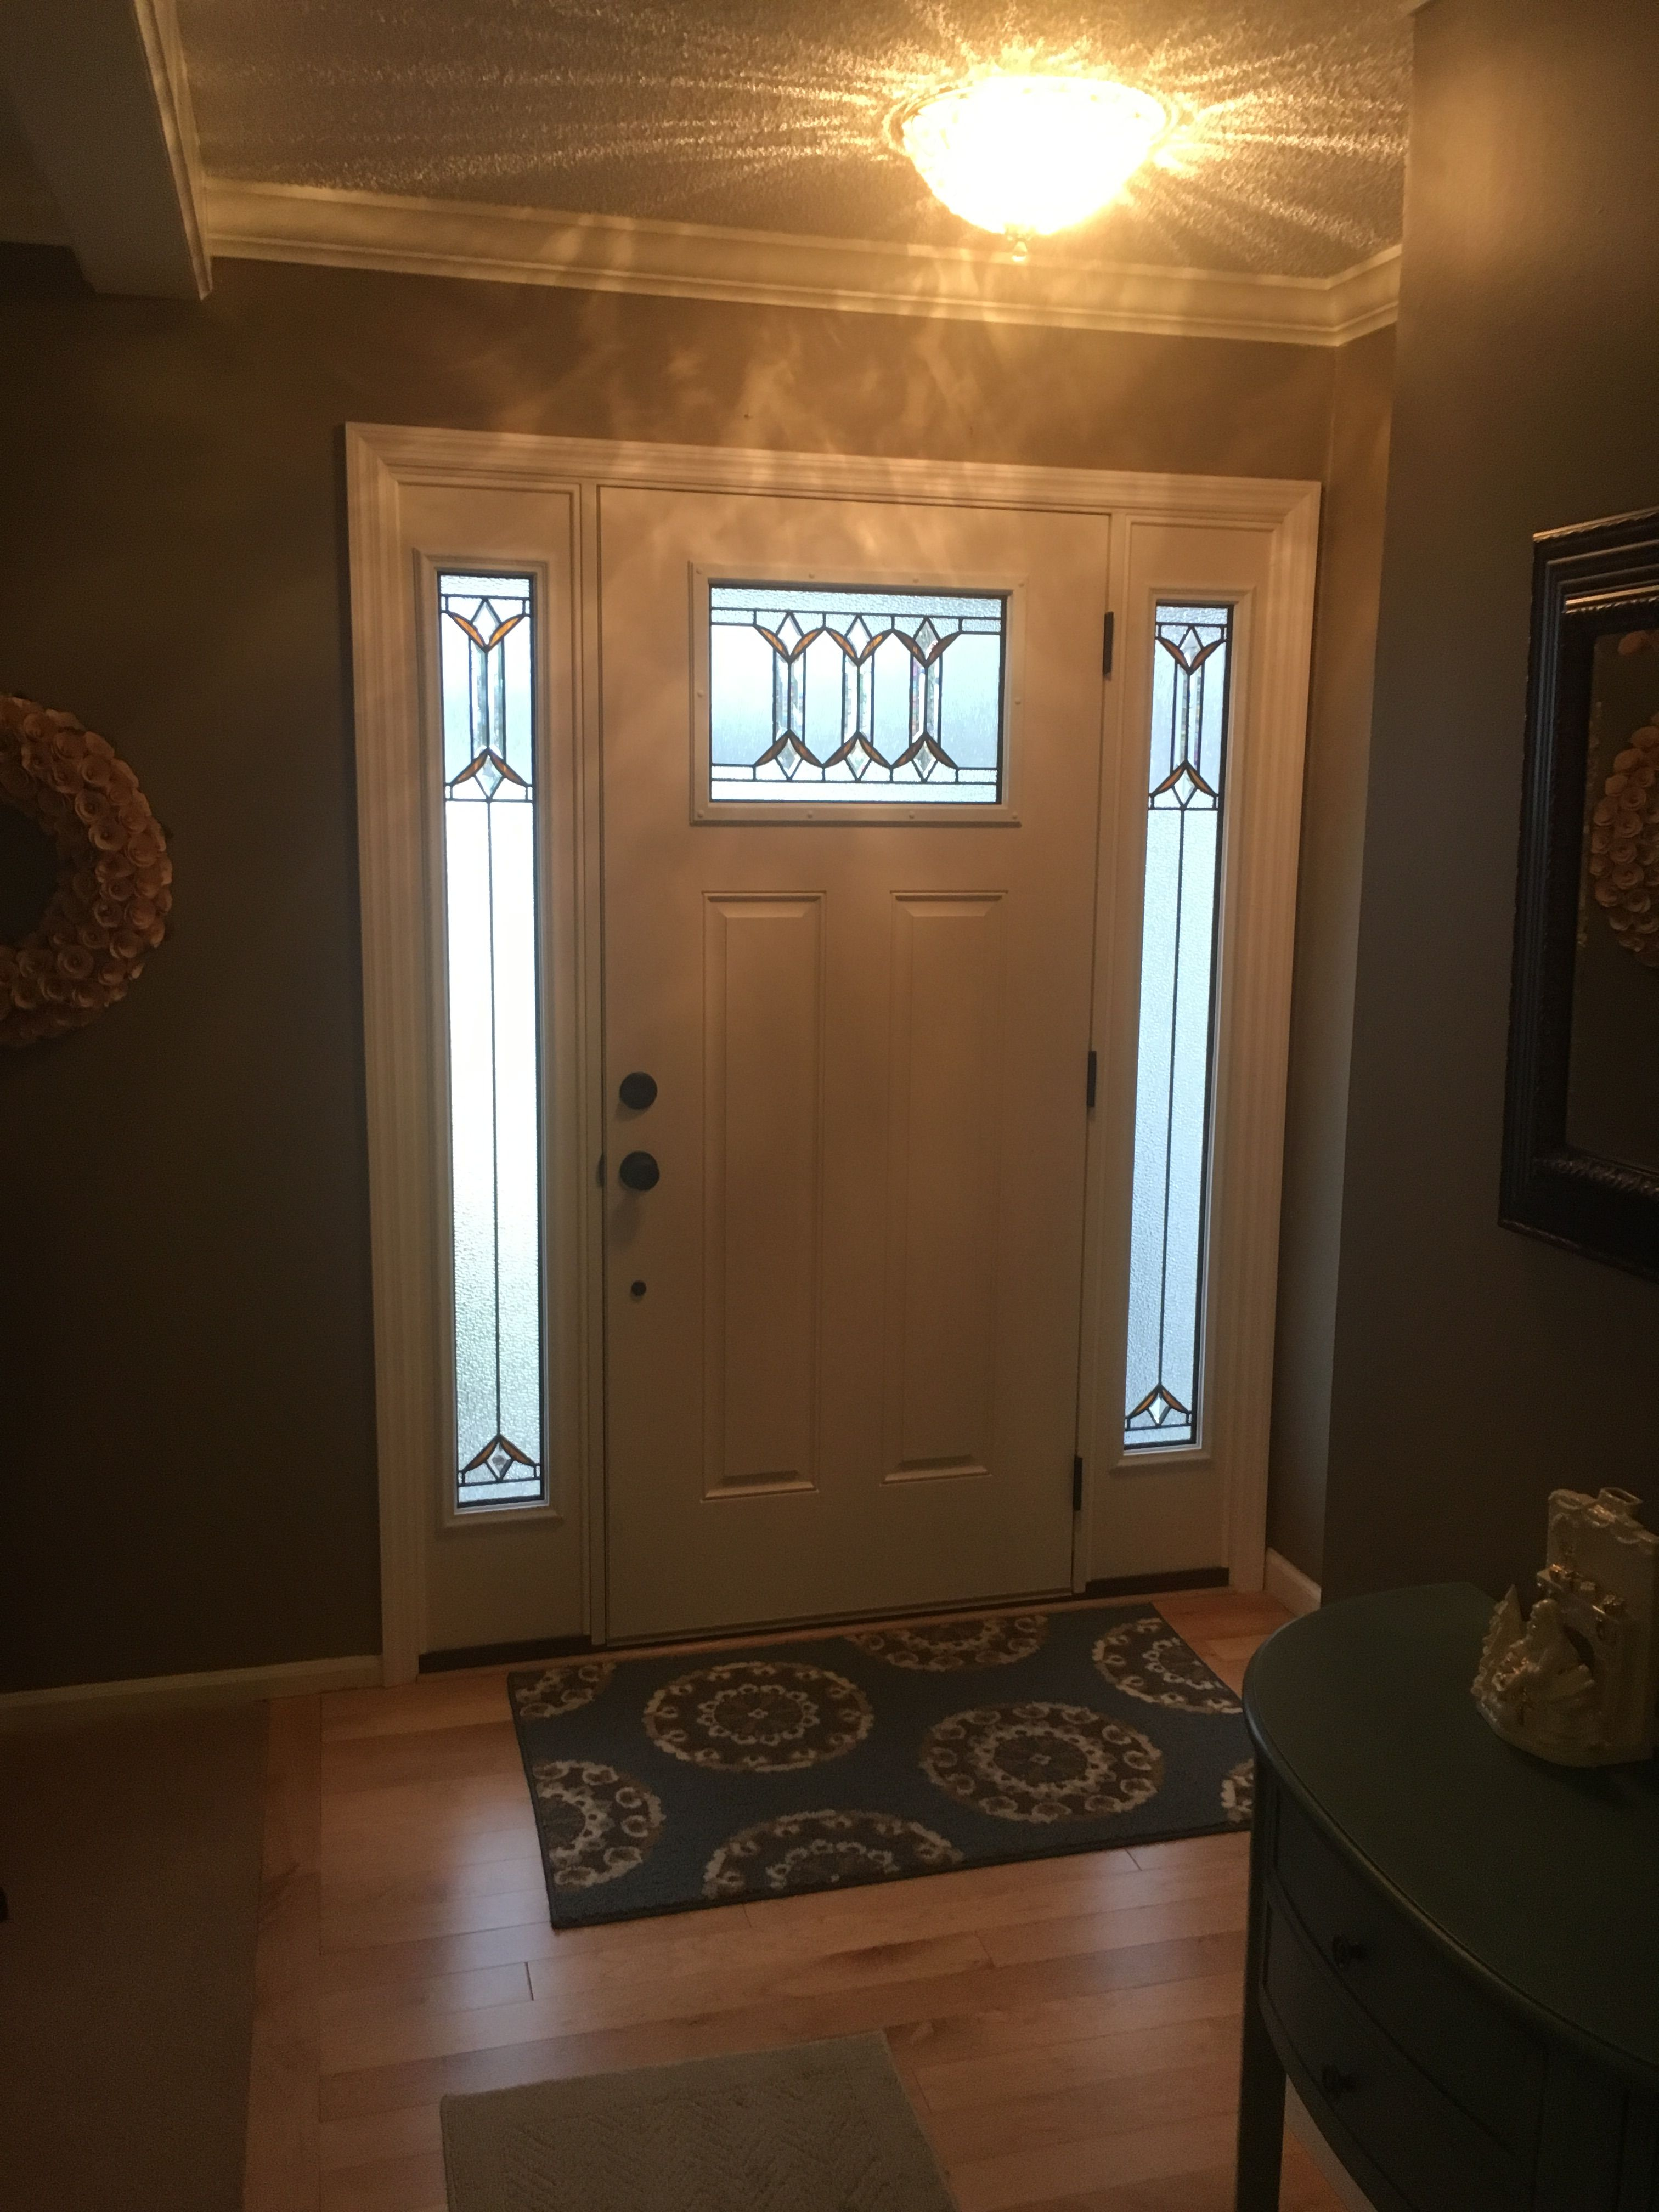 Lowes Park Hill Entry Door Fiberglass Exterior Doors Exterior Doors Fiberglass Door National door company zfs686blfs28l fiberglass smooth, primed, left hand inswing, exterior prehung door, clear glass internal blinds, full lite, 32x80. lowes park hill entry door fiberglass